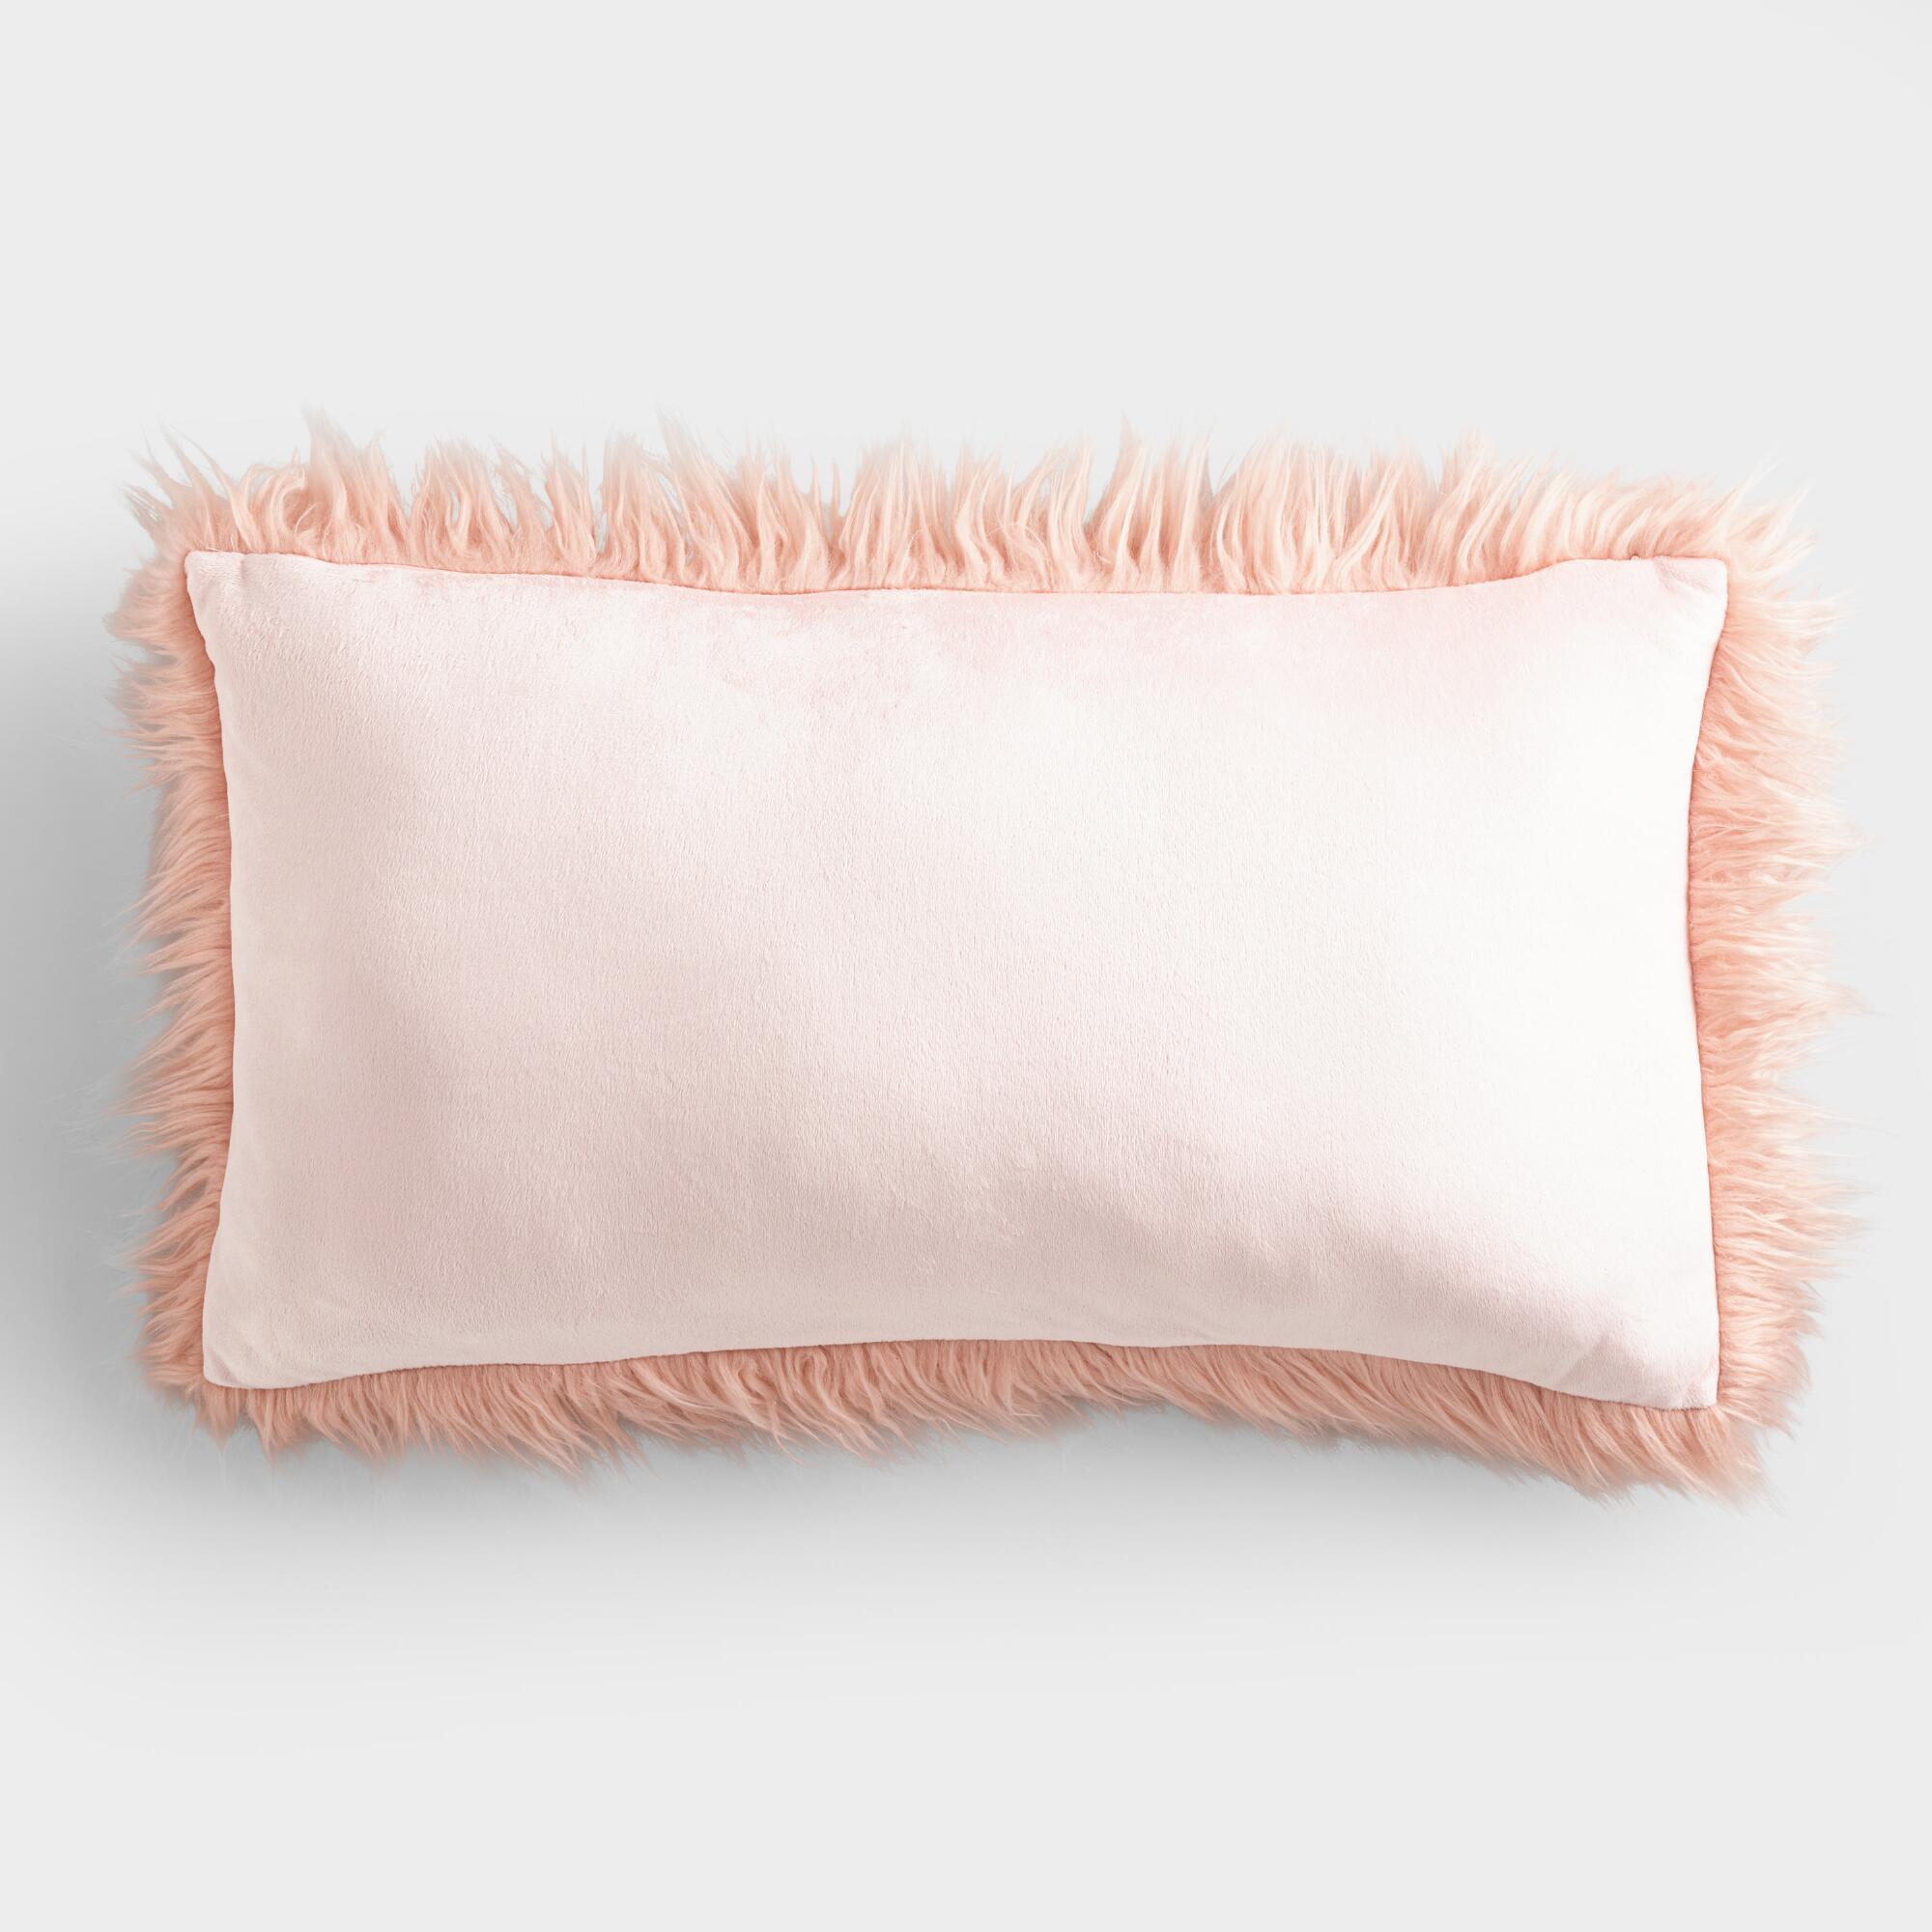 pillow pale boho throw tribal blush dusty pillows listing cover fullxfull il zoom pink pattern